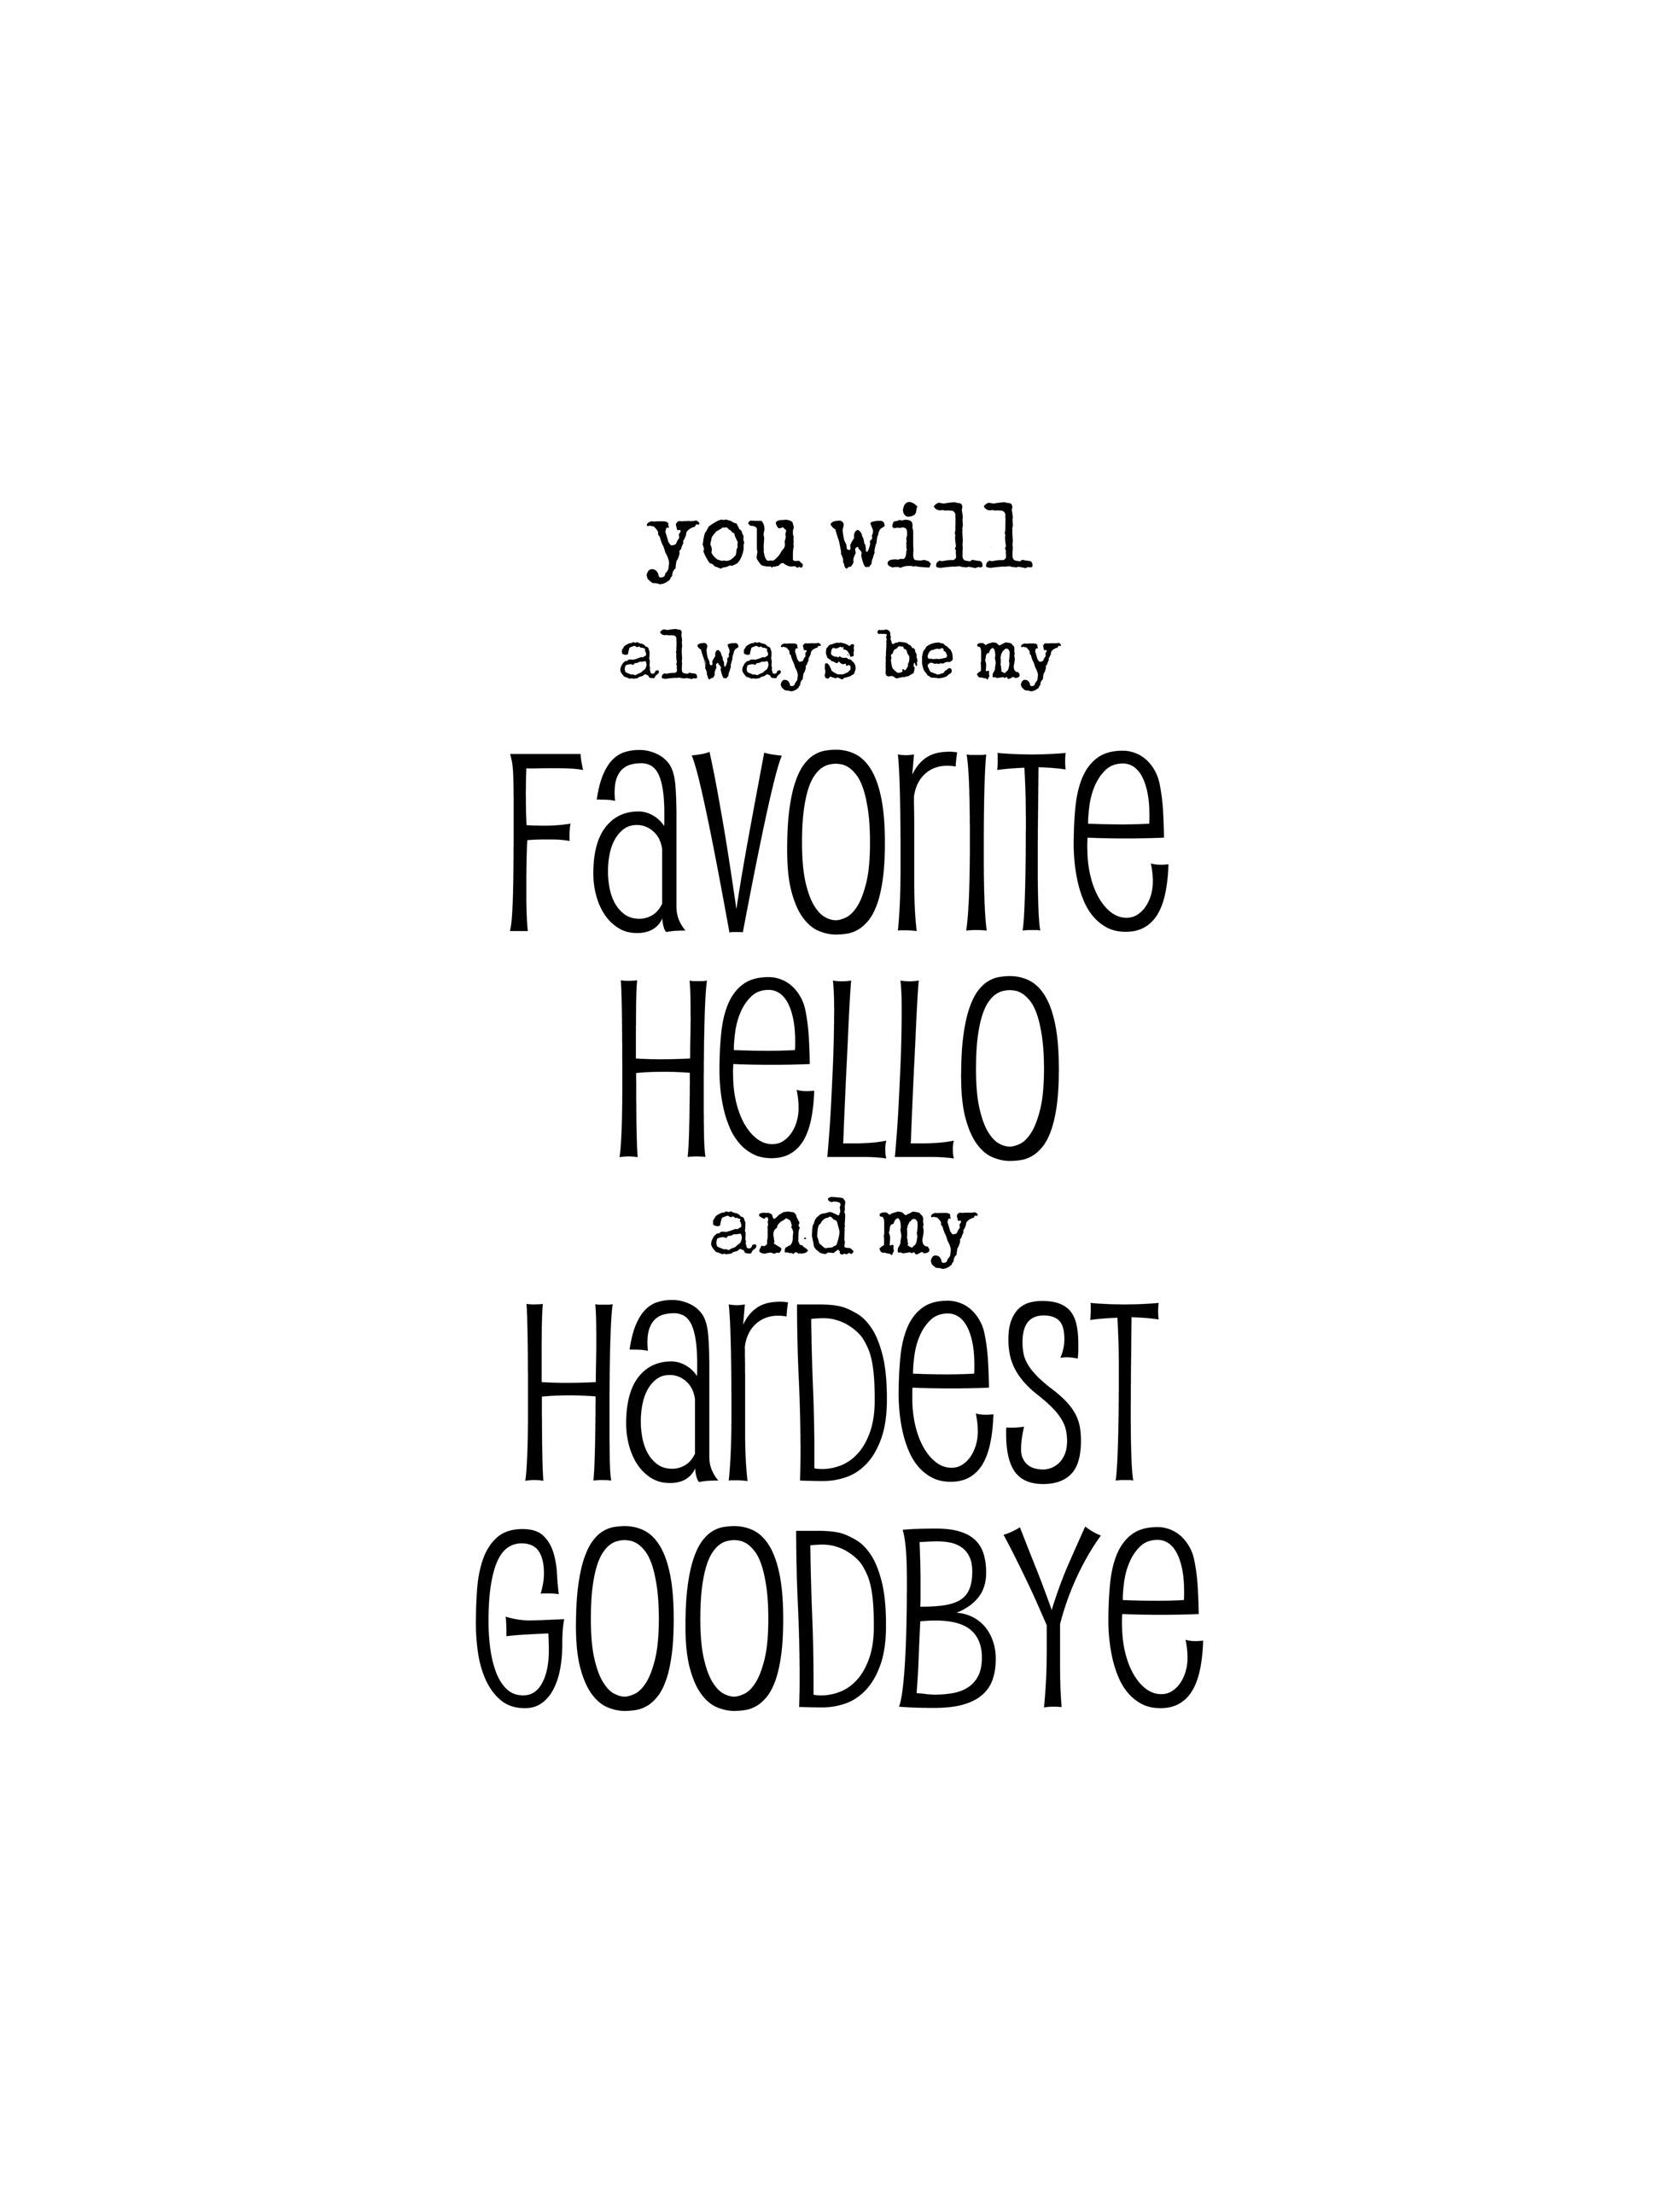 You Will Always Be My Favorite Hello And My Hardest Goodbye